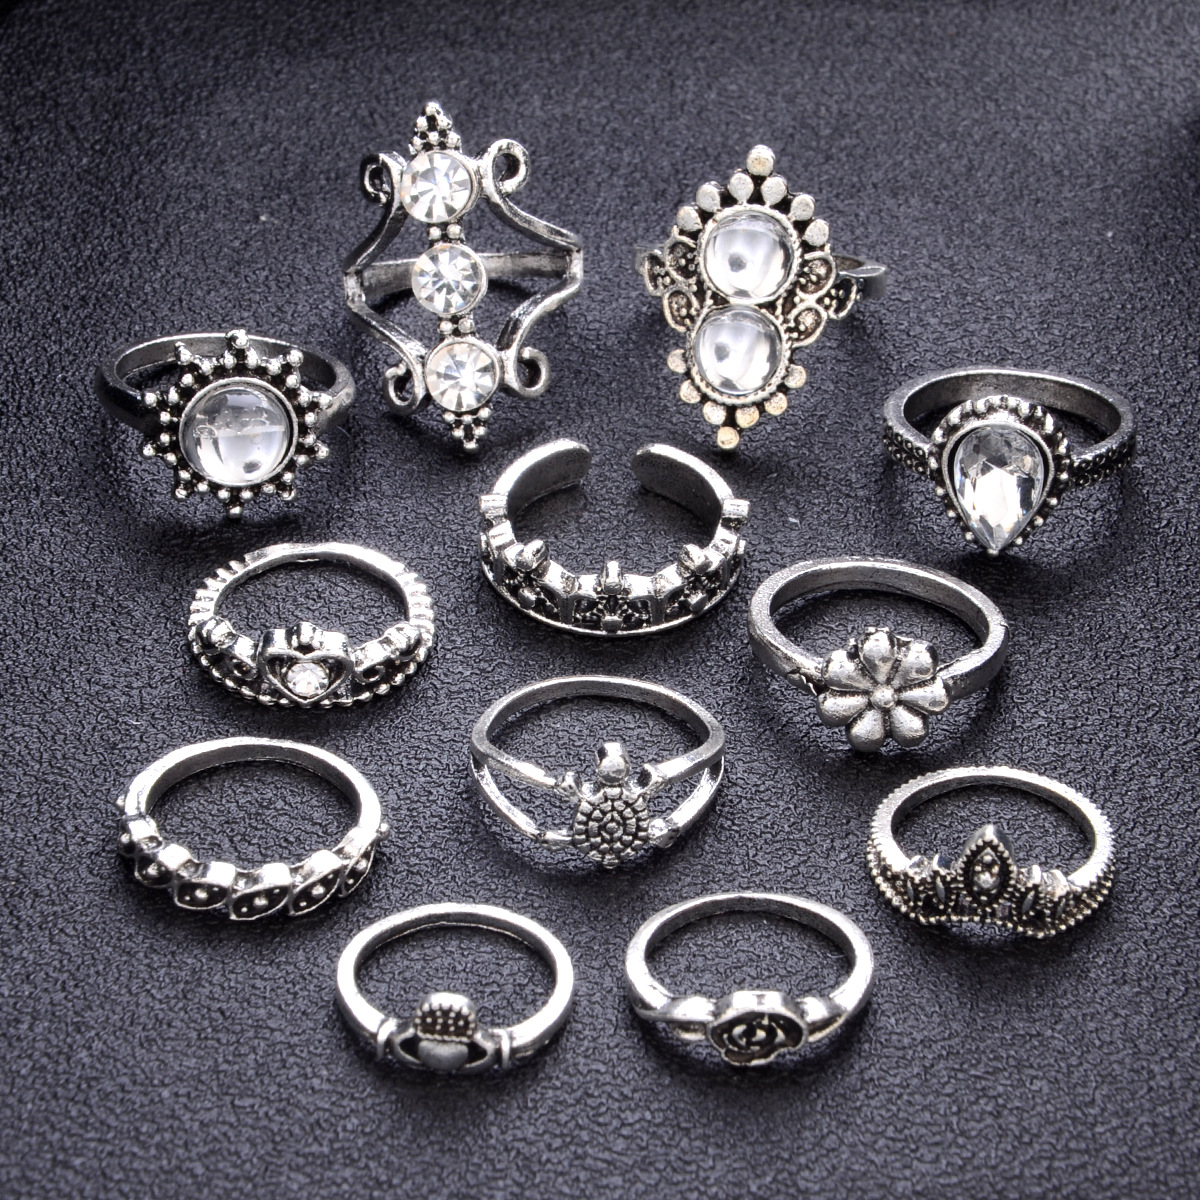 Ring set with 13 sets of gems NHPV175153